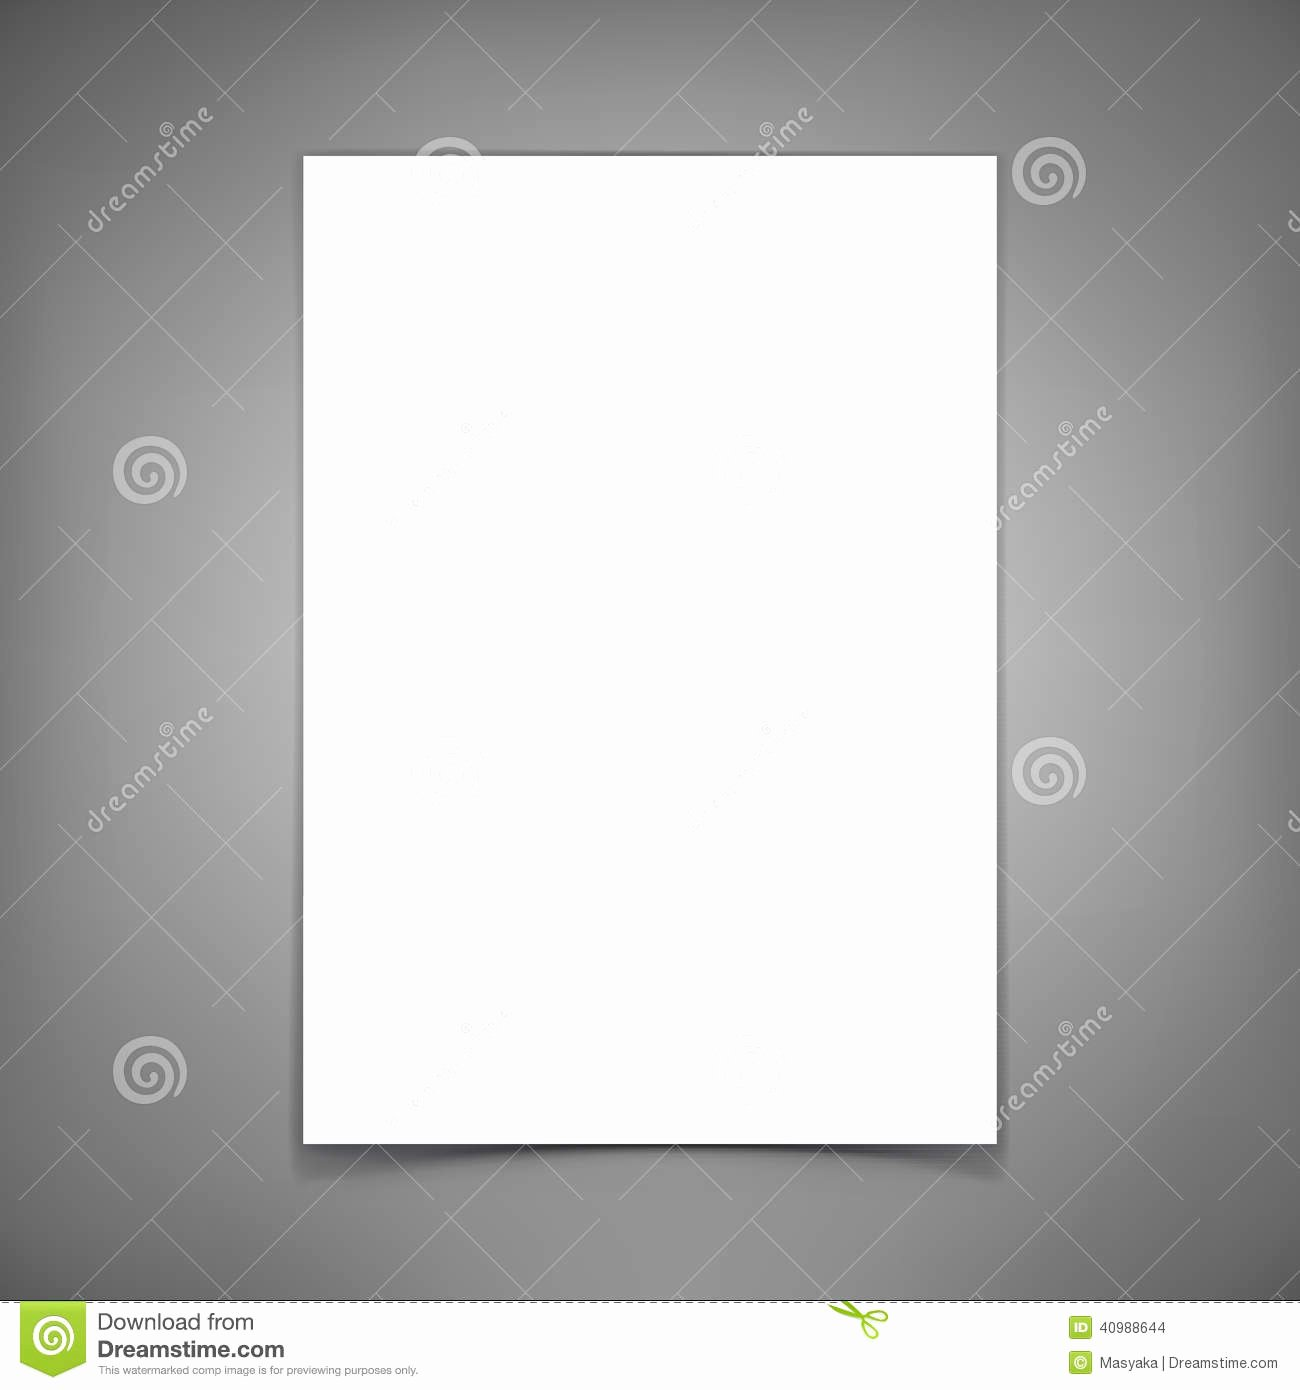 Technical White Paper Template Elegant Vector Blank Paper Sheet Template for Your Design Stock